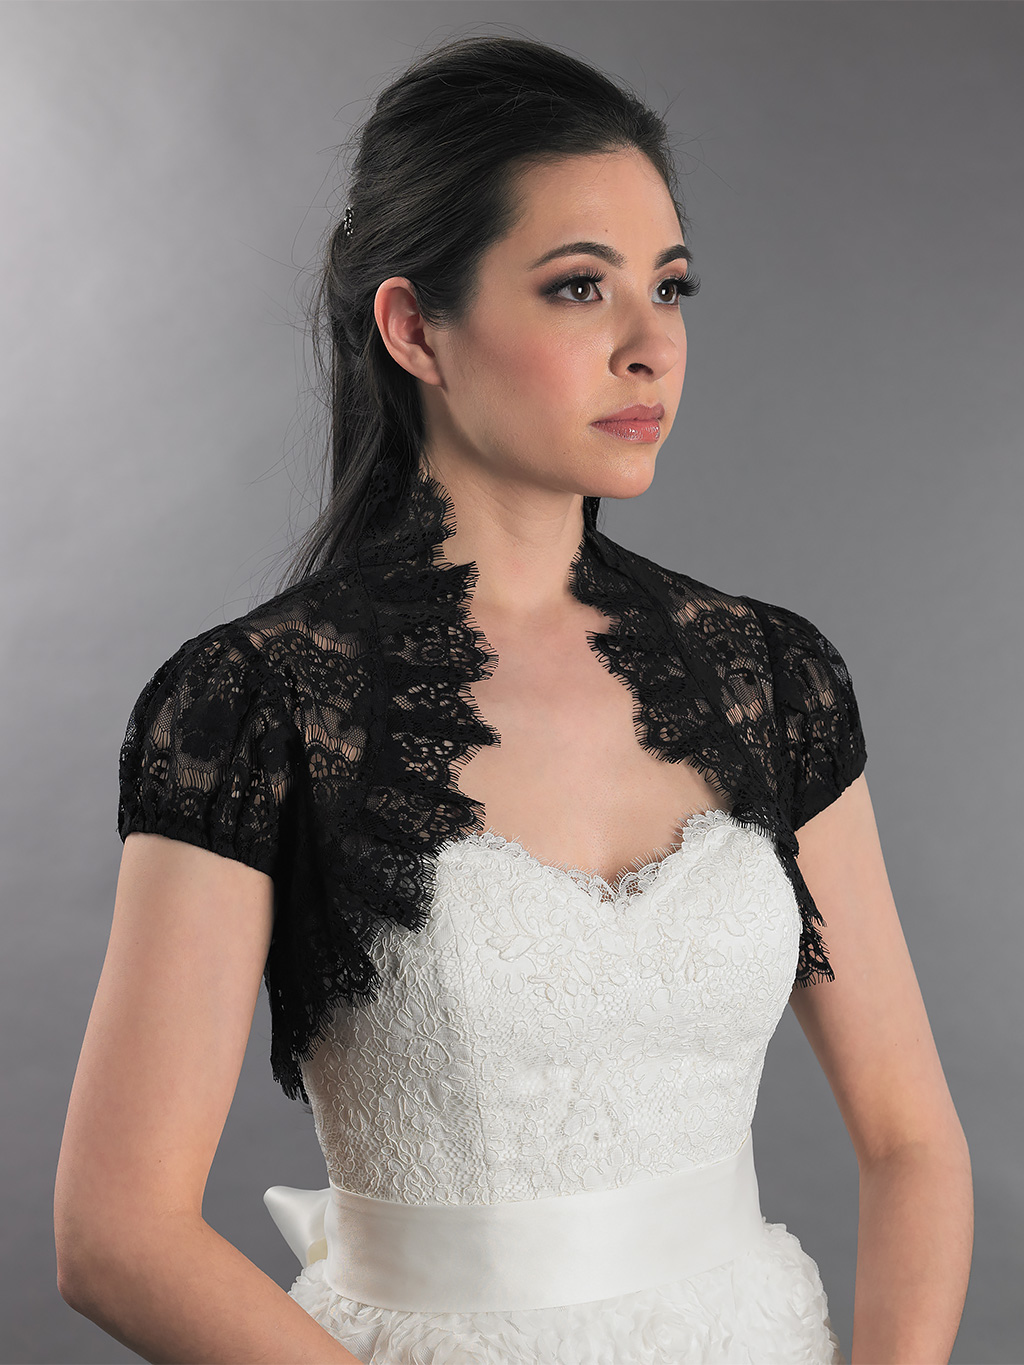 ... Lace Bolero Jacket > Black short sleeve corded lace wedding bolero